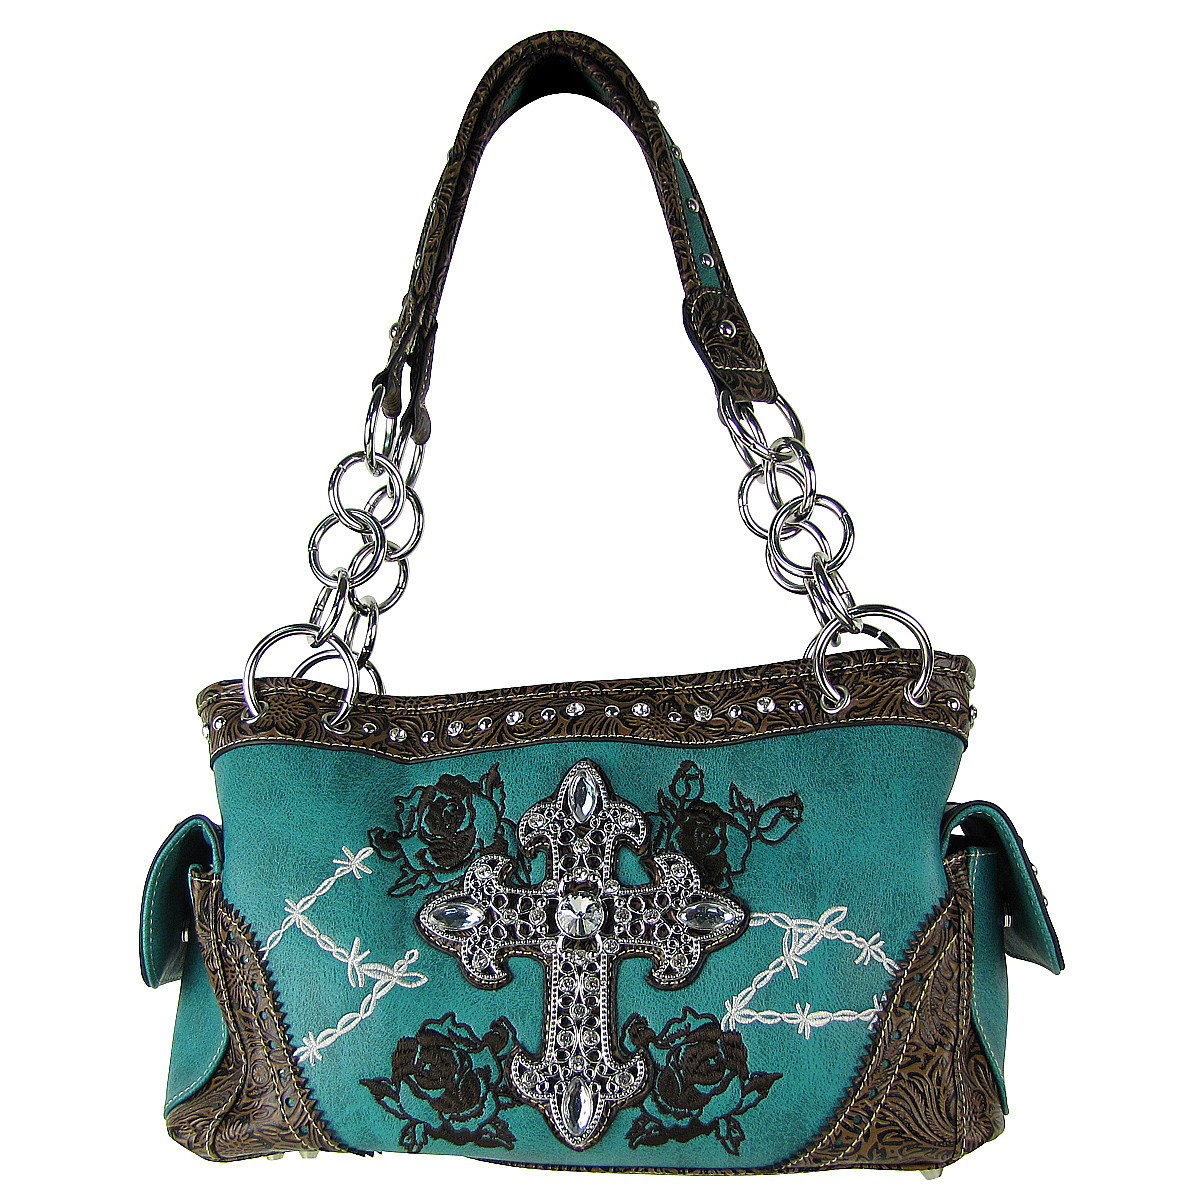 TURQUOISE STITCHED WESTERN ROSE CROSS LOOK SHOULDER HANDBAG HB1-CHF0018TRQ